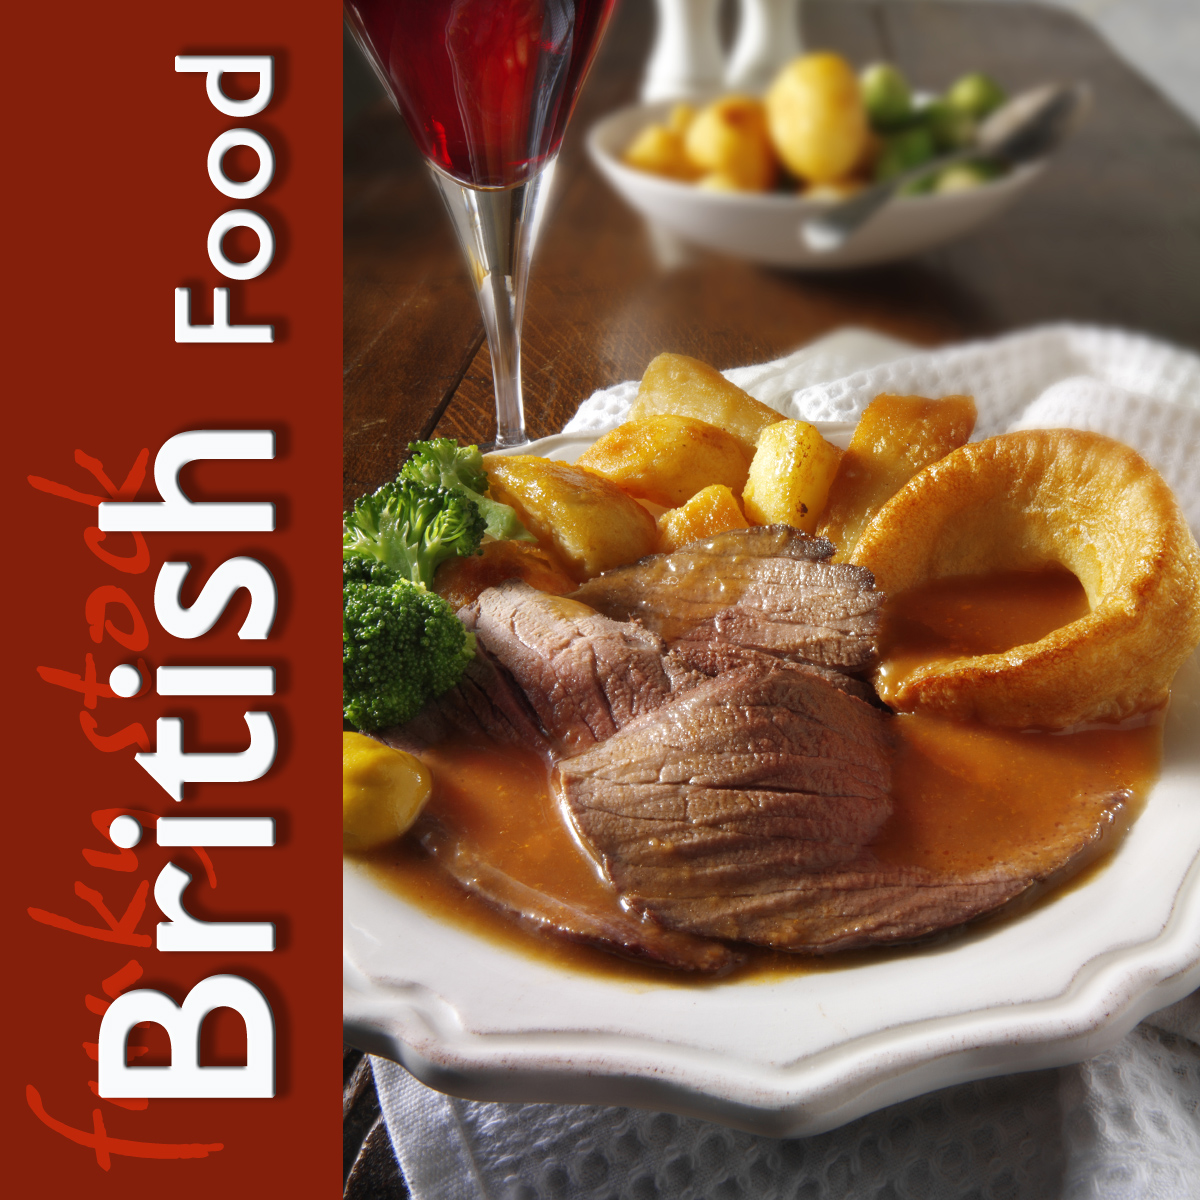 english cuisine Definition of cuisine - a style or method of cooking, especially as characteristic of a particular country, region, or establishment.